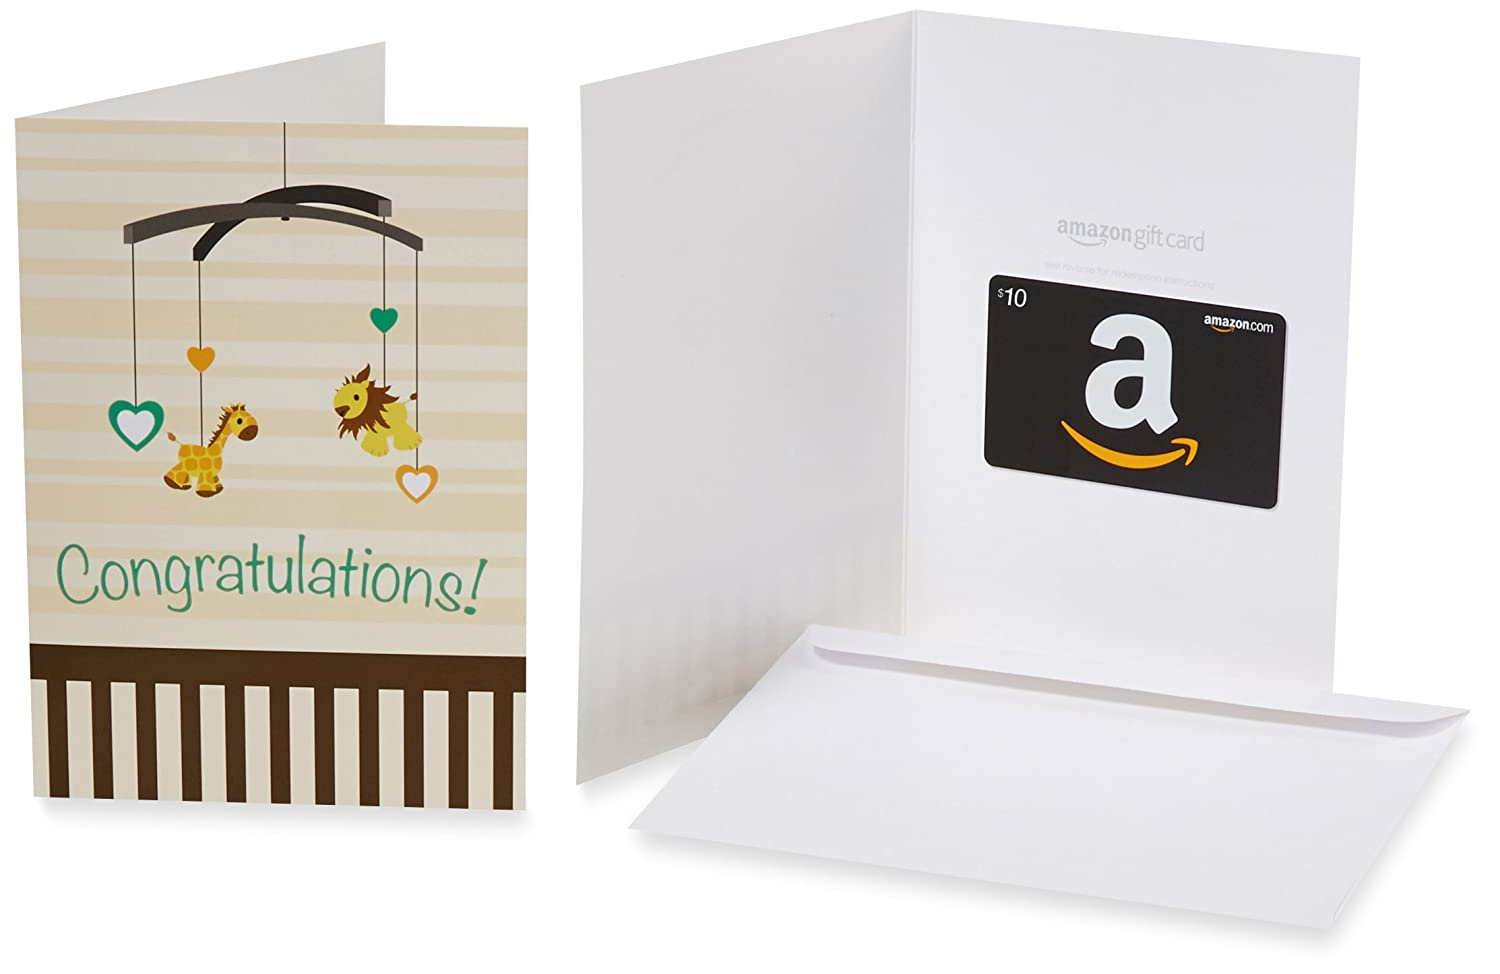 Amazon.com $10 Gift Card in a Greeting Card (Oh, Baby! Design)